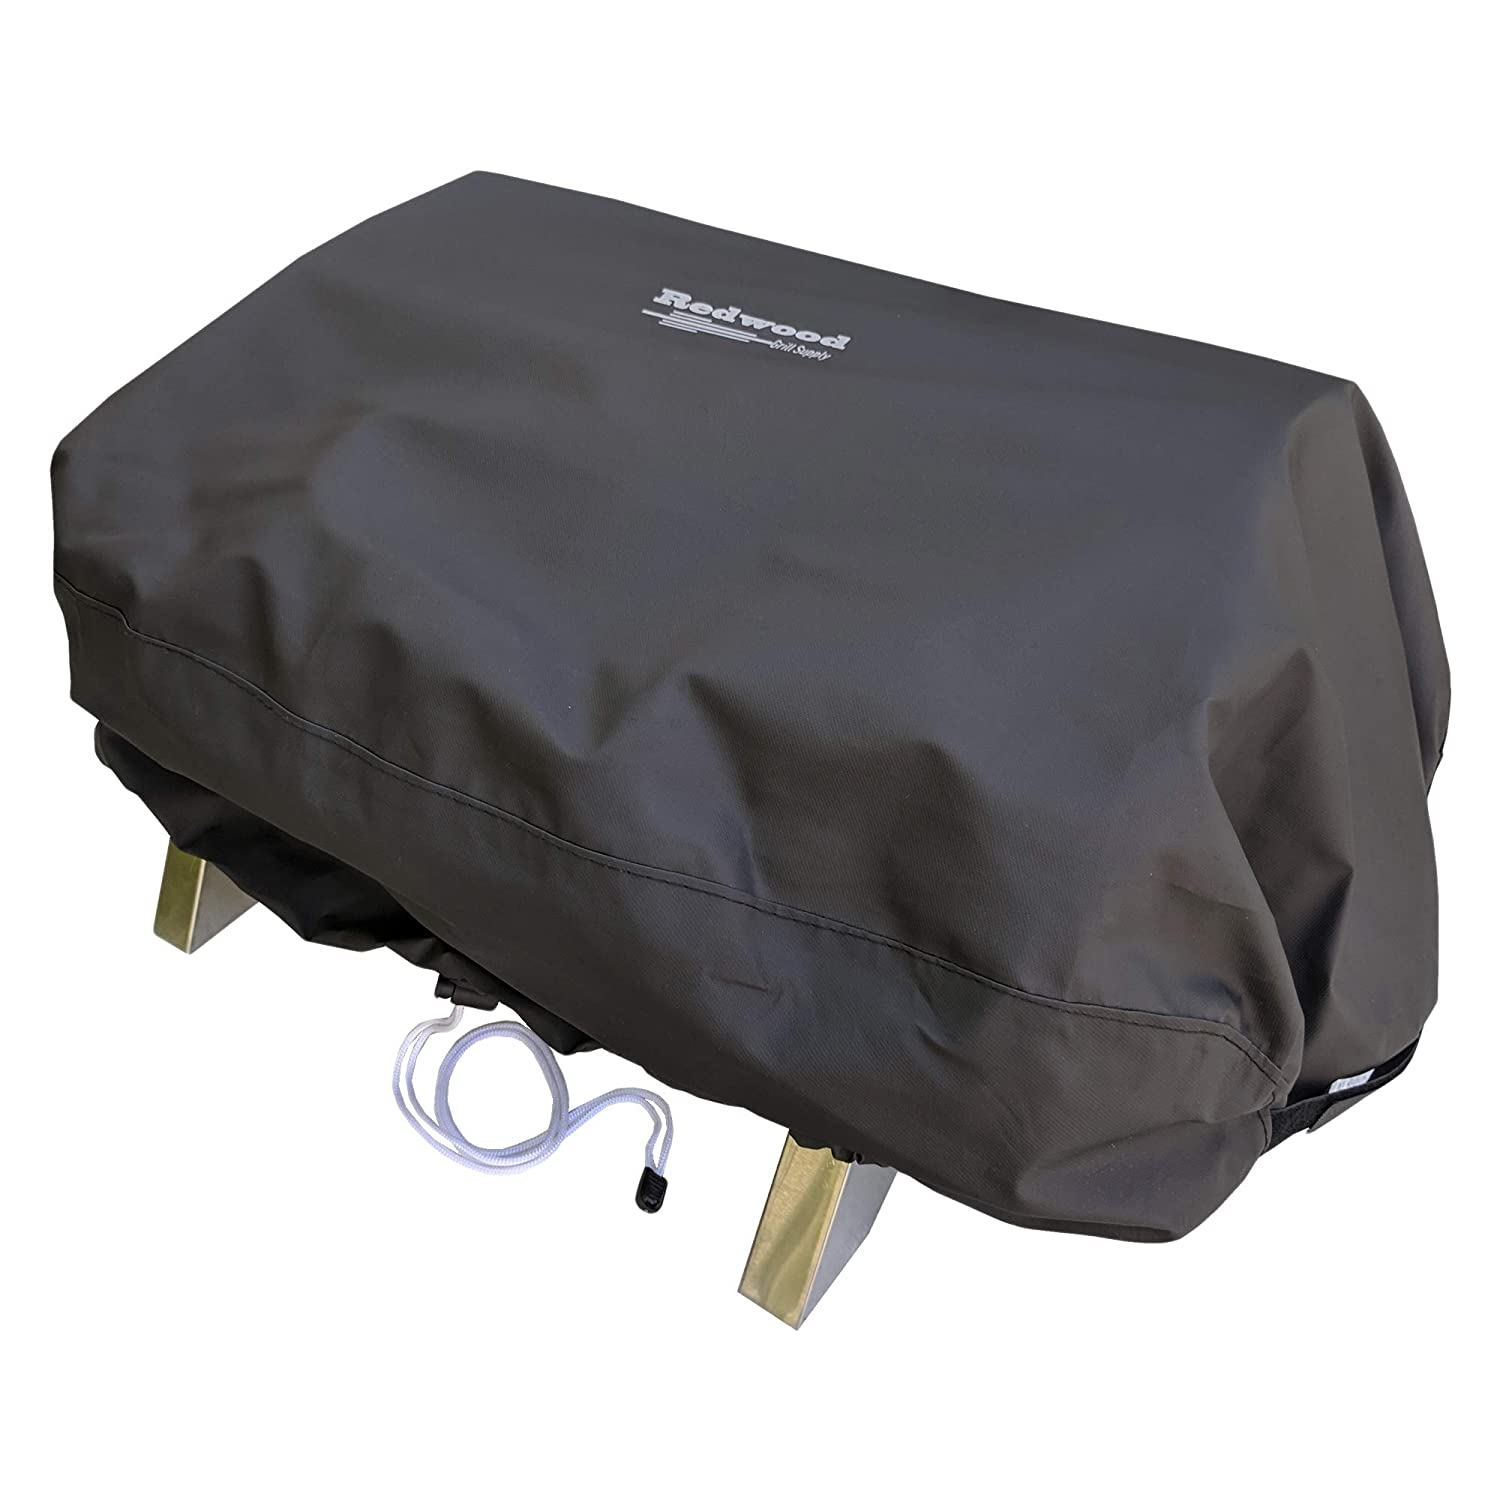 Grill Cover for Smoke Hollow 205 - Outdoor Use, Heavy Duty, Waterproof, Drawstring Design by Redwood Grill Supply